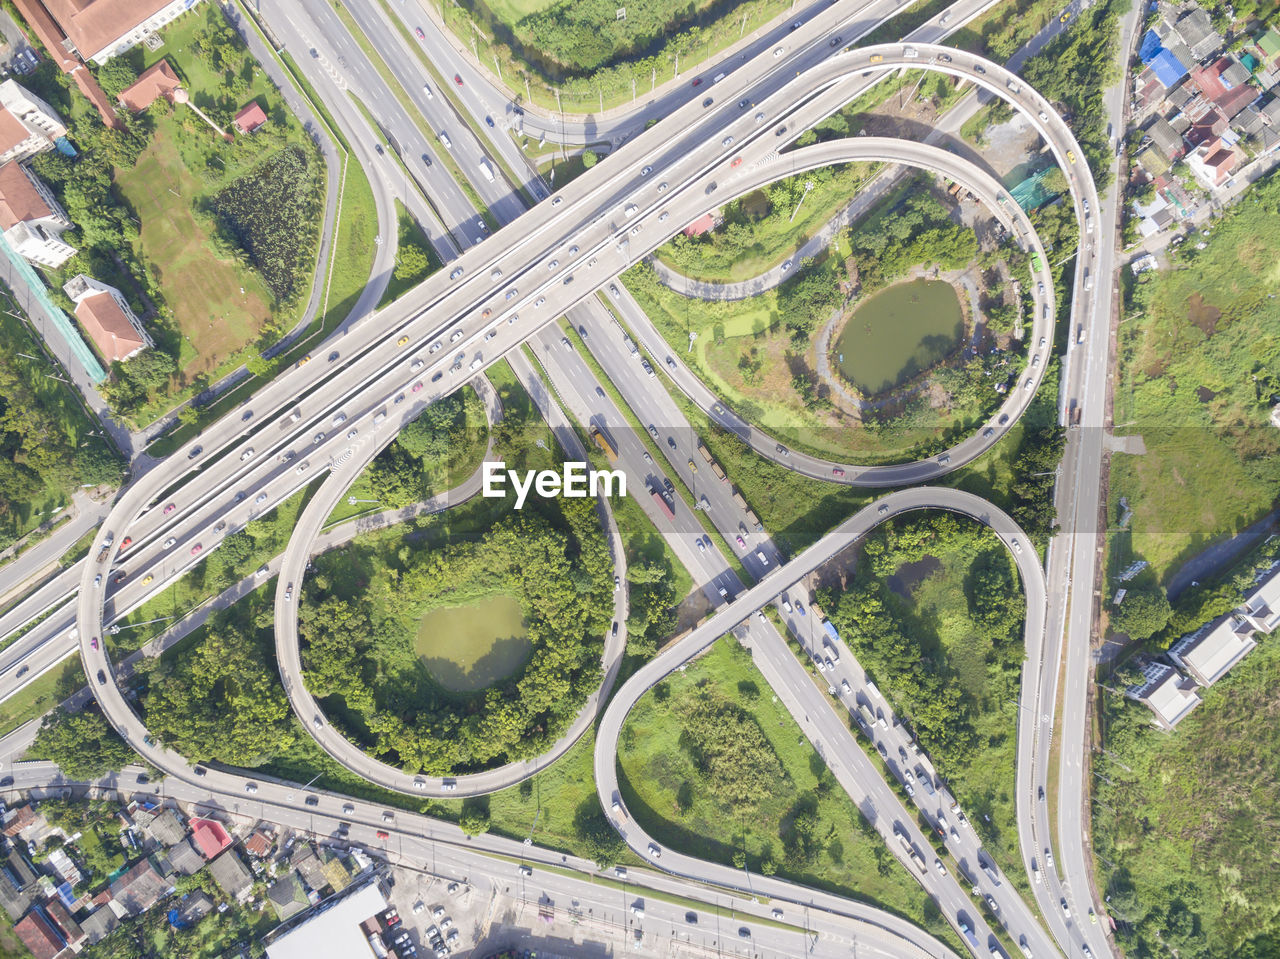 road, aerial view, transportation, high angle view, highway, plant, city, street, mode of transportation, day, no people, nature, multiple lane highway, elevated road, overpass, land vehicle, landscape, green color, tree, environment, outdoors